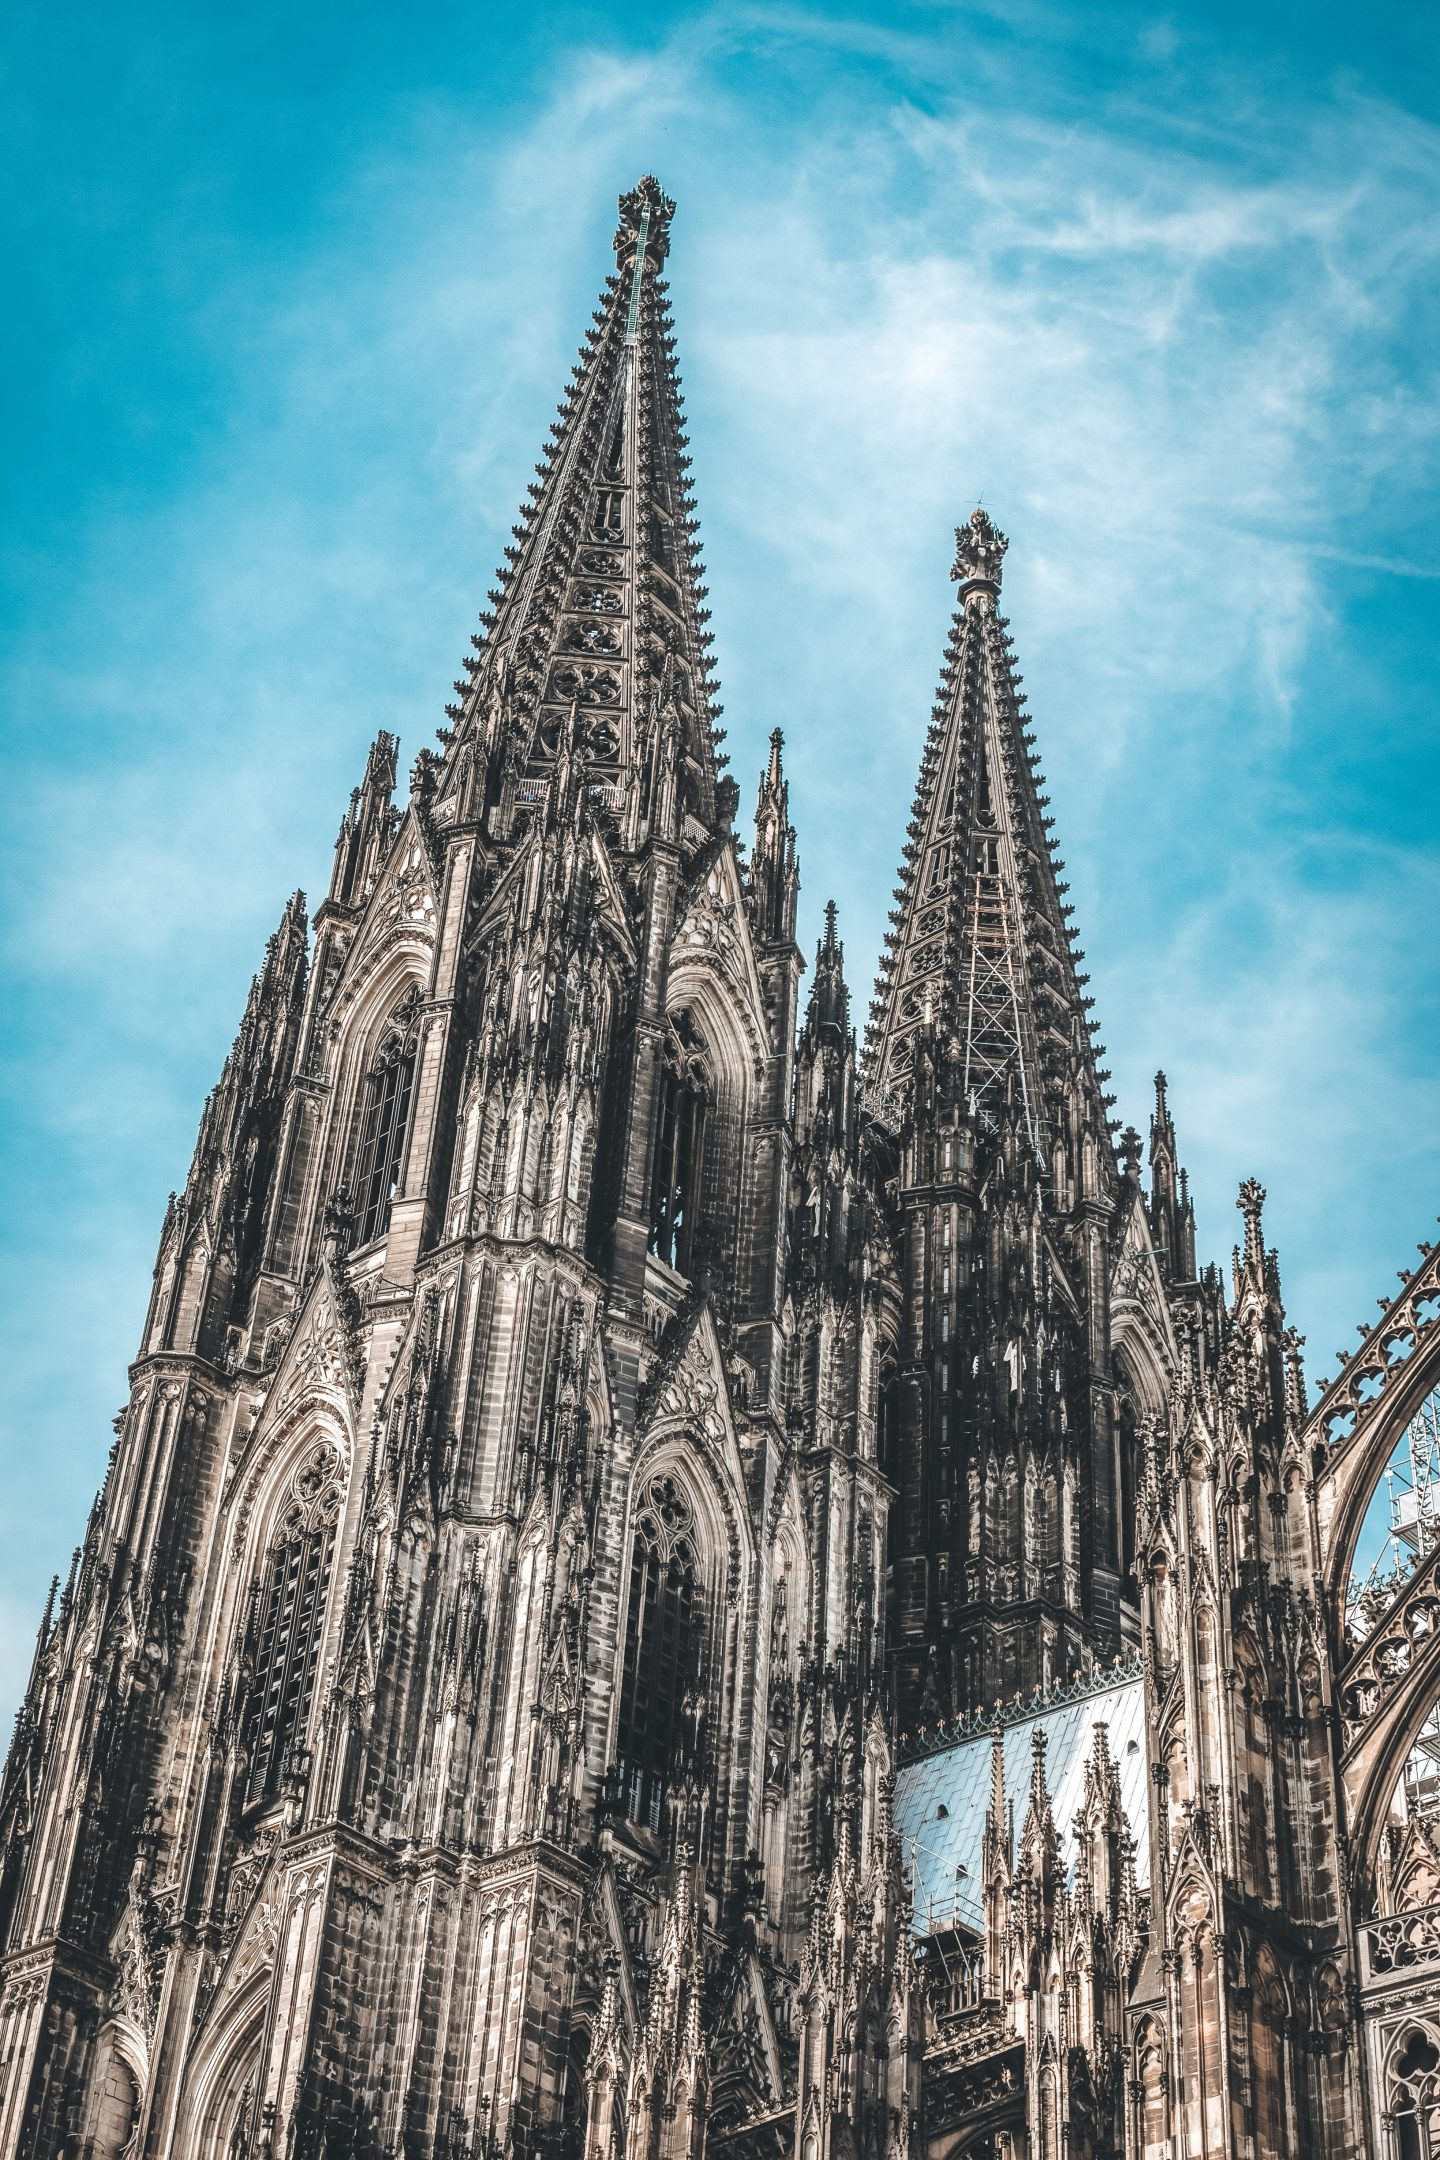 cologne-cathedral-germany-dom-cologne